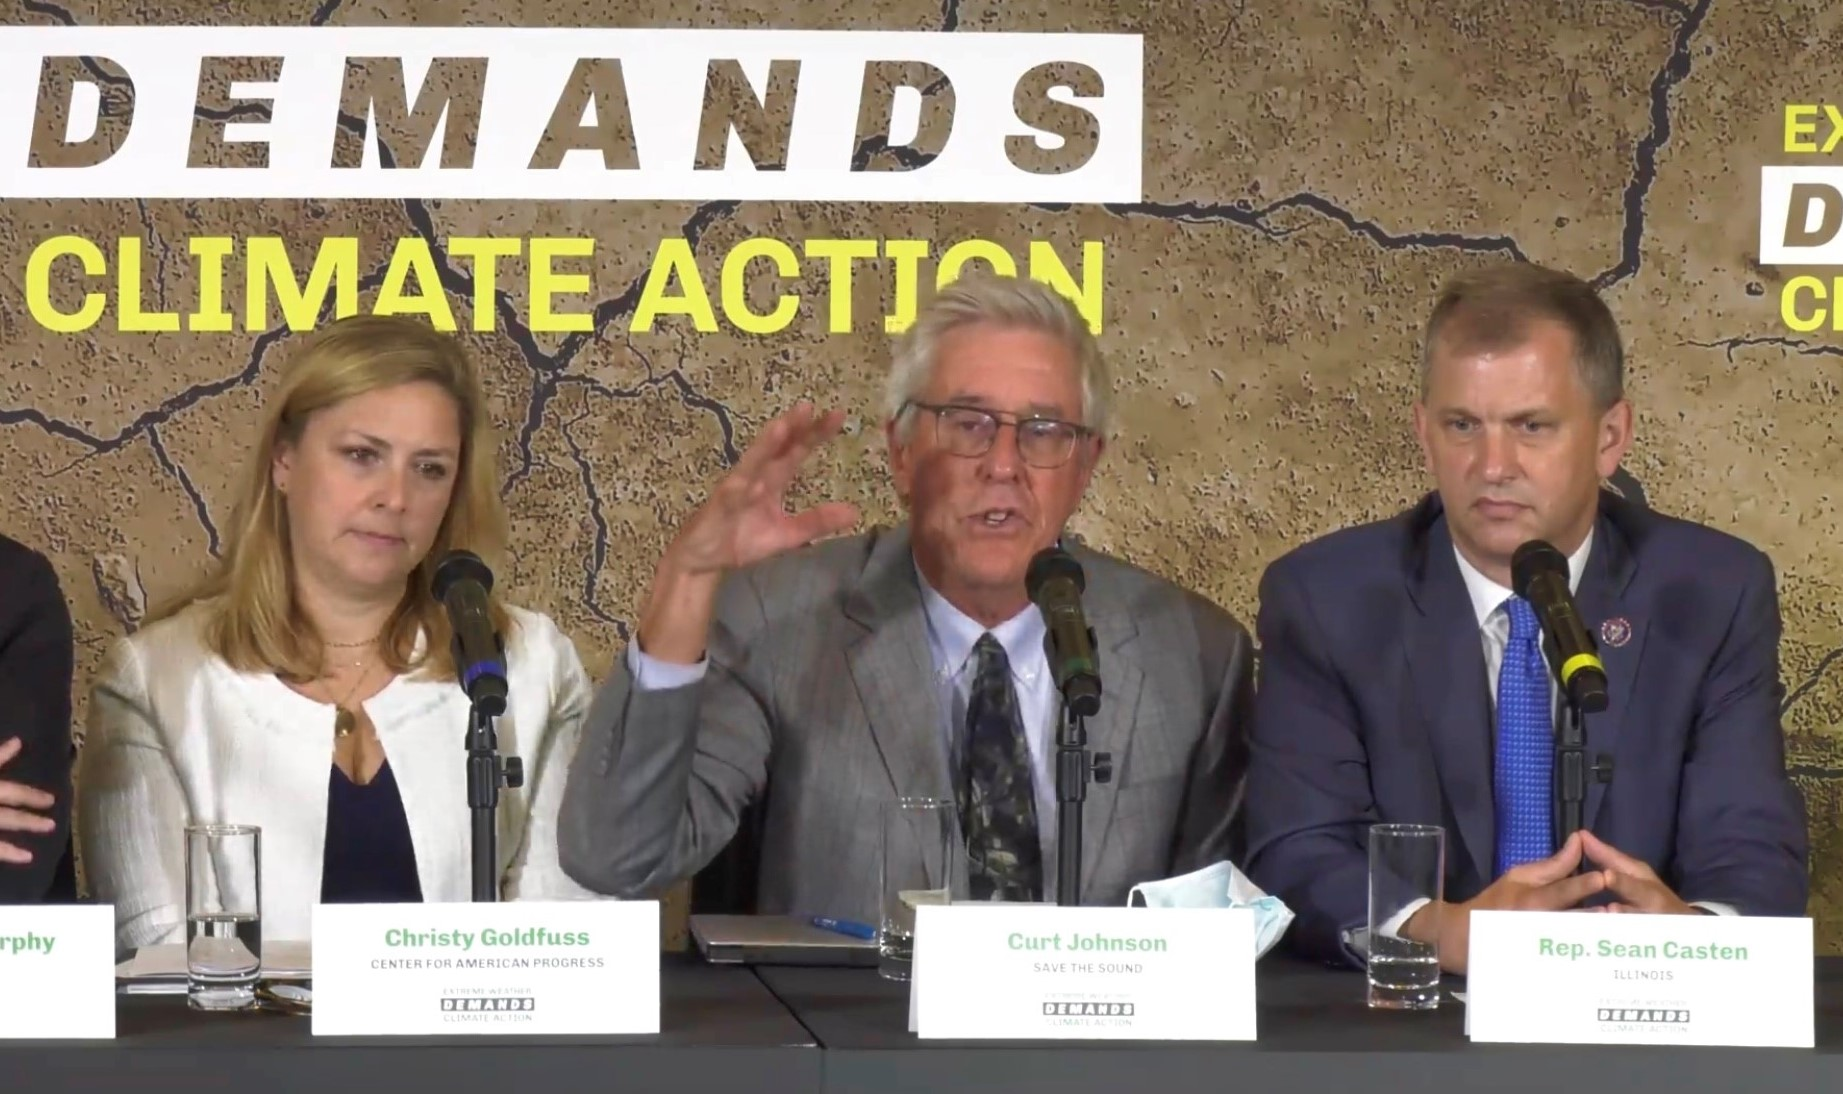 """Save the Sound president Curt Johnson, flanked by two people, gesticulating in front of a sign that says """"demands climate action"""""""